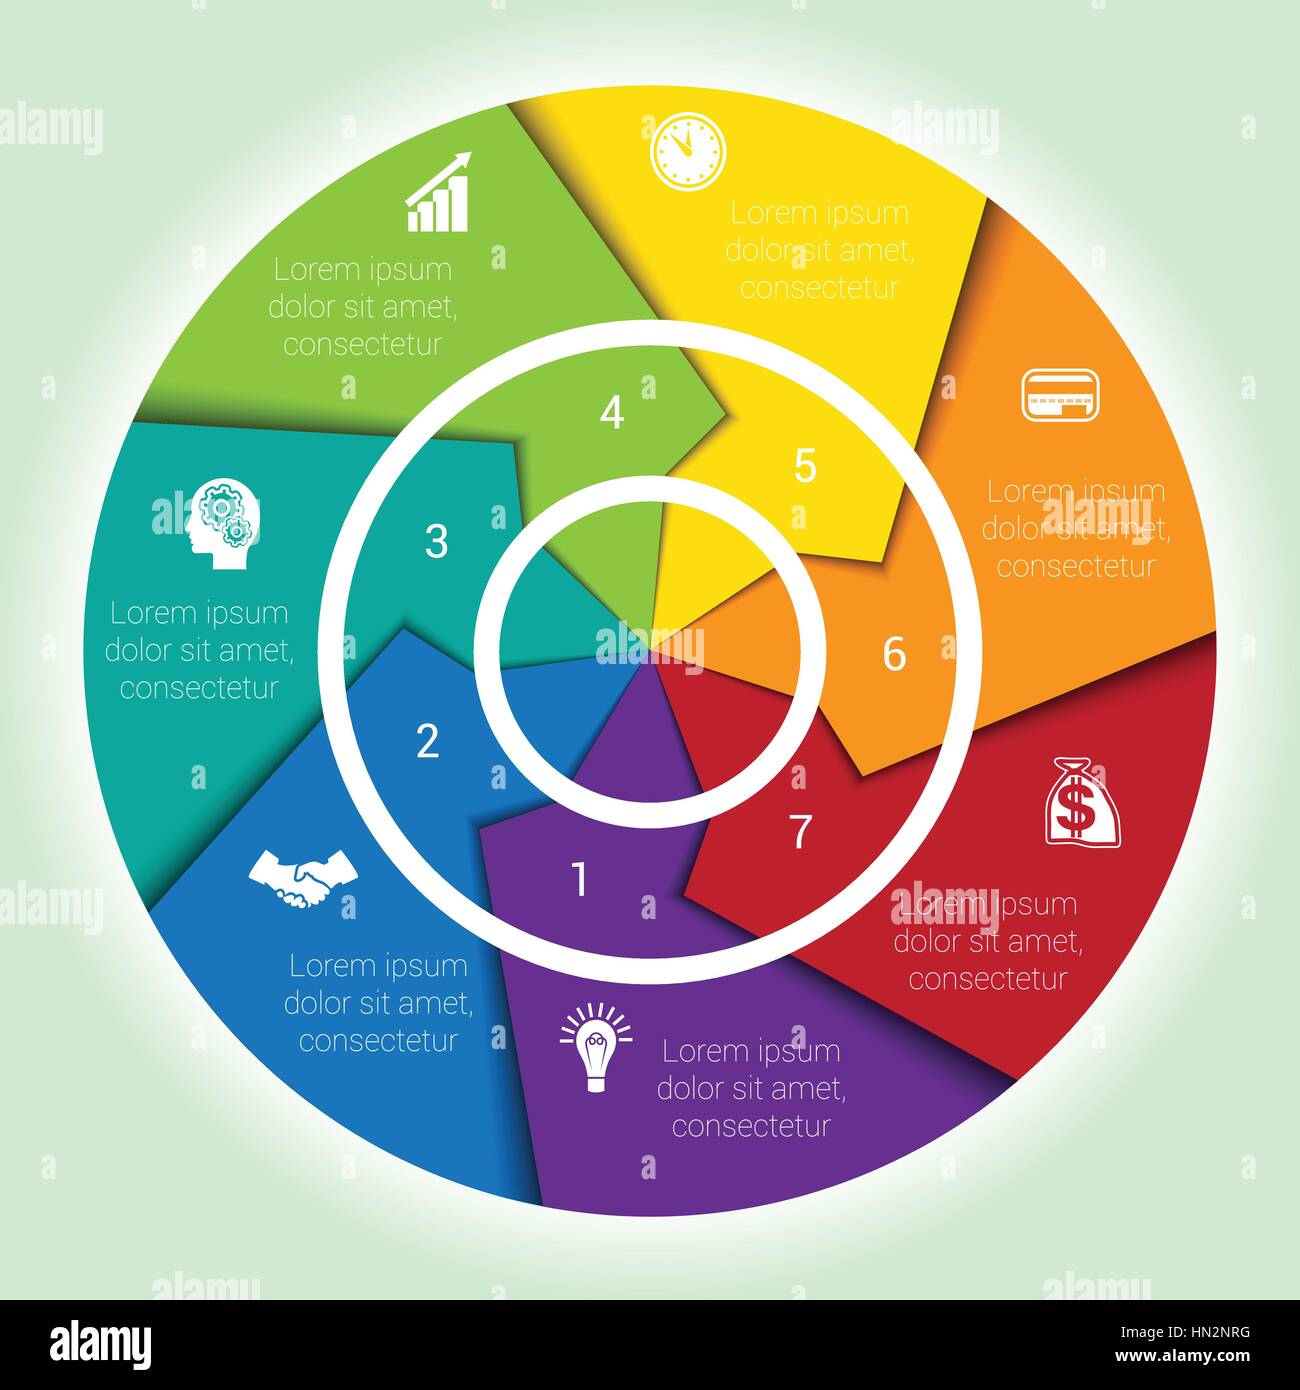 hight resolution of template cyclic diagramme for infographic seven position area chart ring arrows pie chart stock